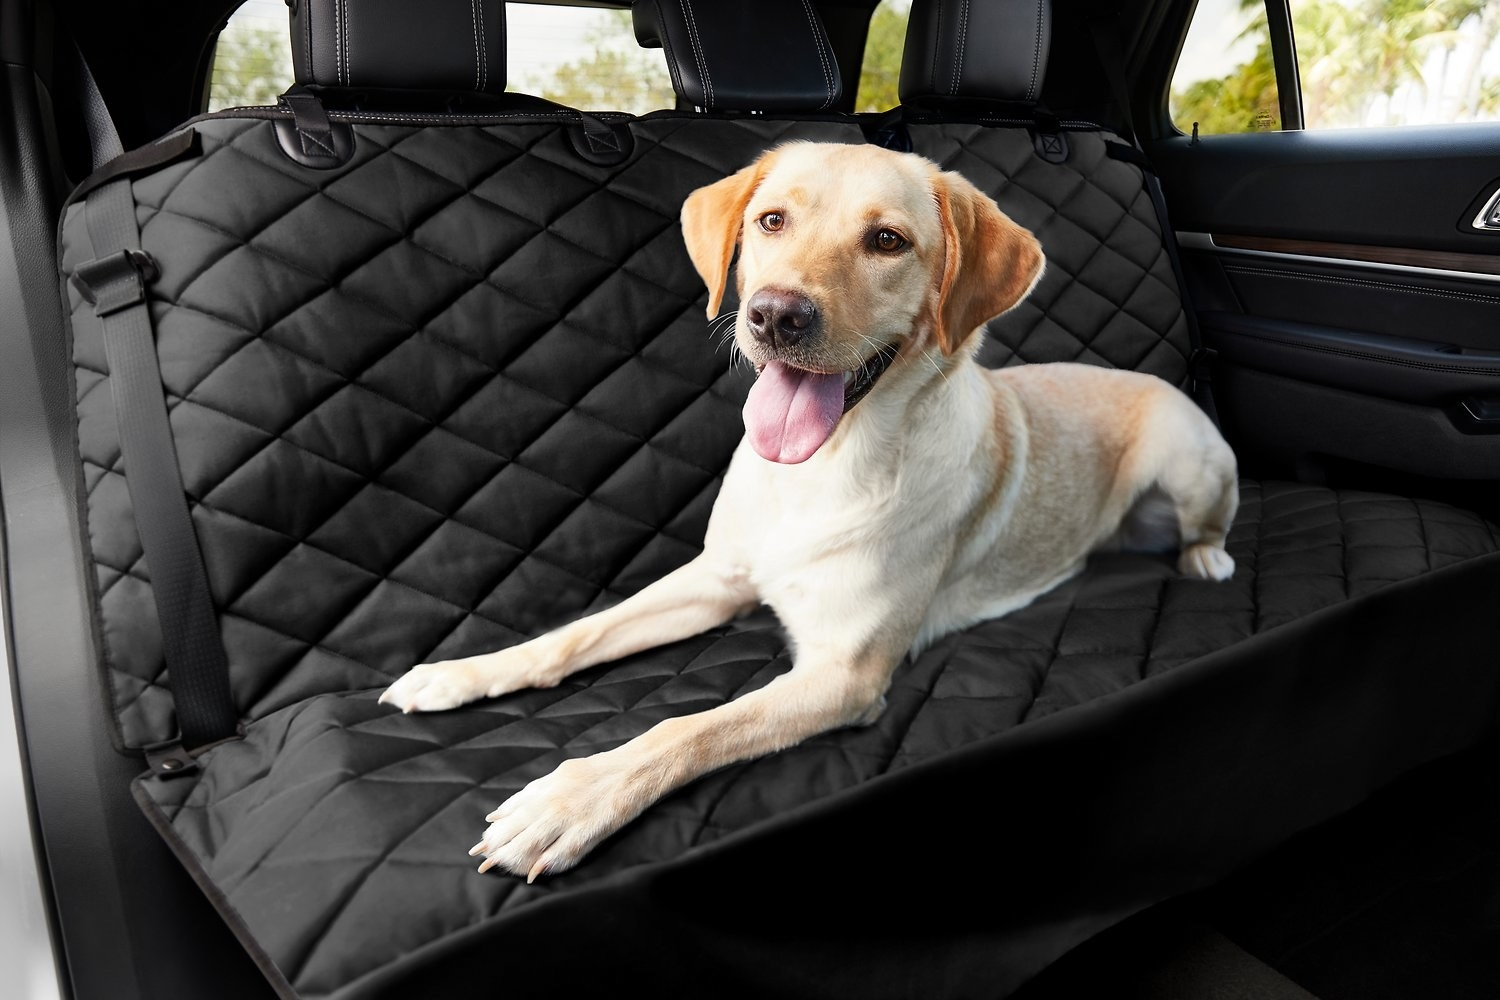 Dog sitting on the bench car seat with the cover